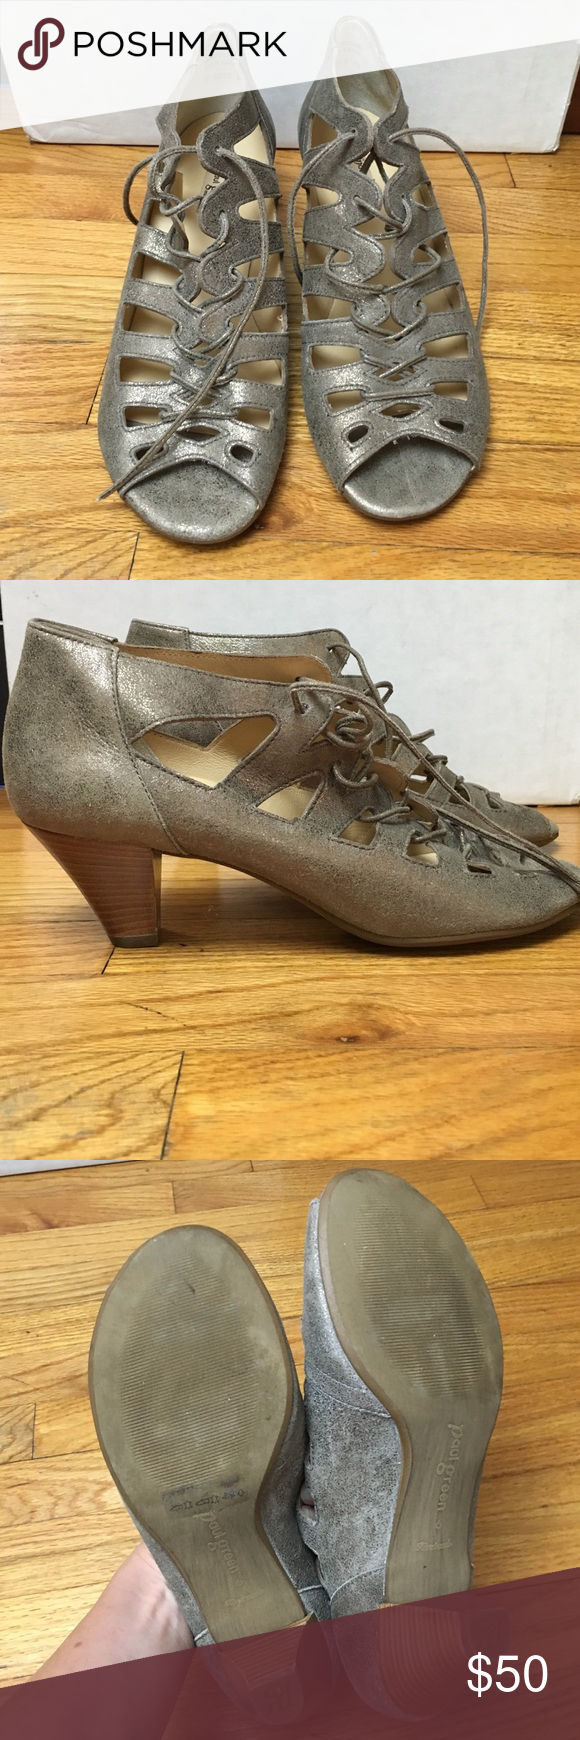 Paul Green sandals Size: 6 NWOT Paul Green 'Prague' lace up sandals worn once and are in perfect condition. 2 inch heel. Are a soft suede leather with bronze/metallic shimmer. Comes without box. Will be shipped next day. Paul Green Shoes Sandals